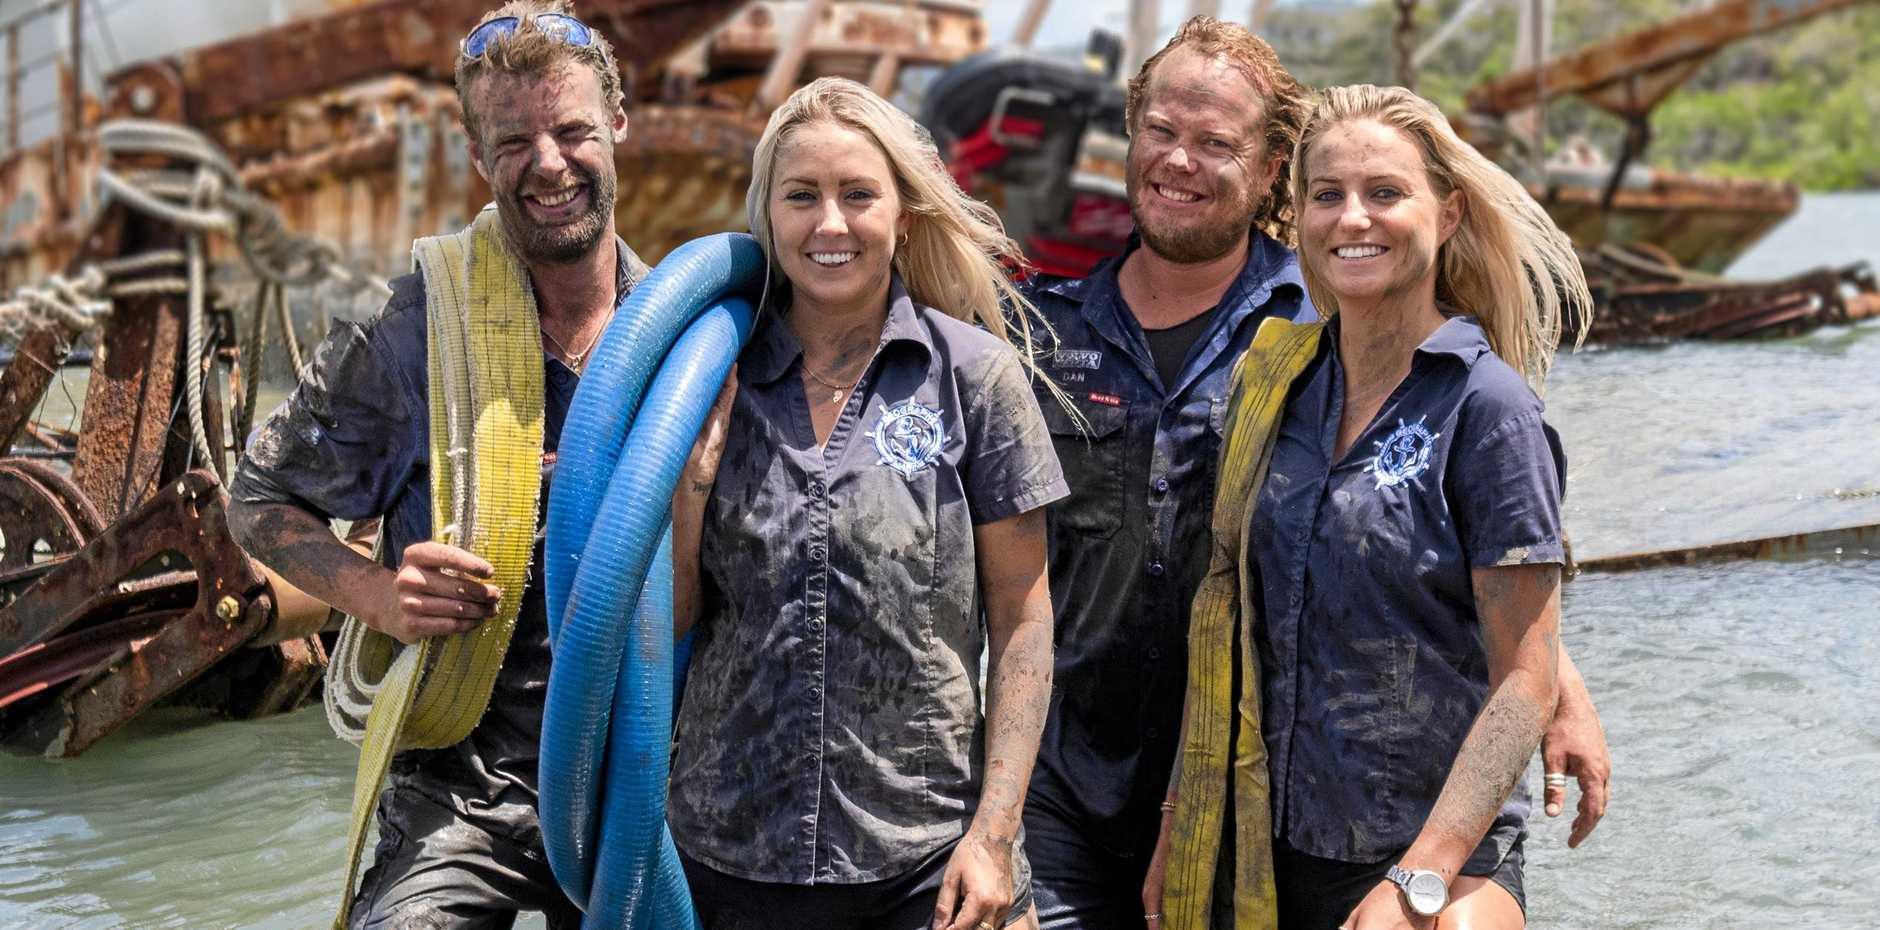 TO THE RESCUE: The Aussie Salvage Squad team, Luke Purdy, Jayde Towers, Dan Miliauskas and Ellie Faranda aren't afraid to get their hands dirty.